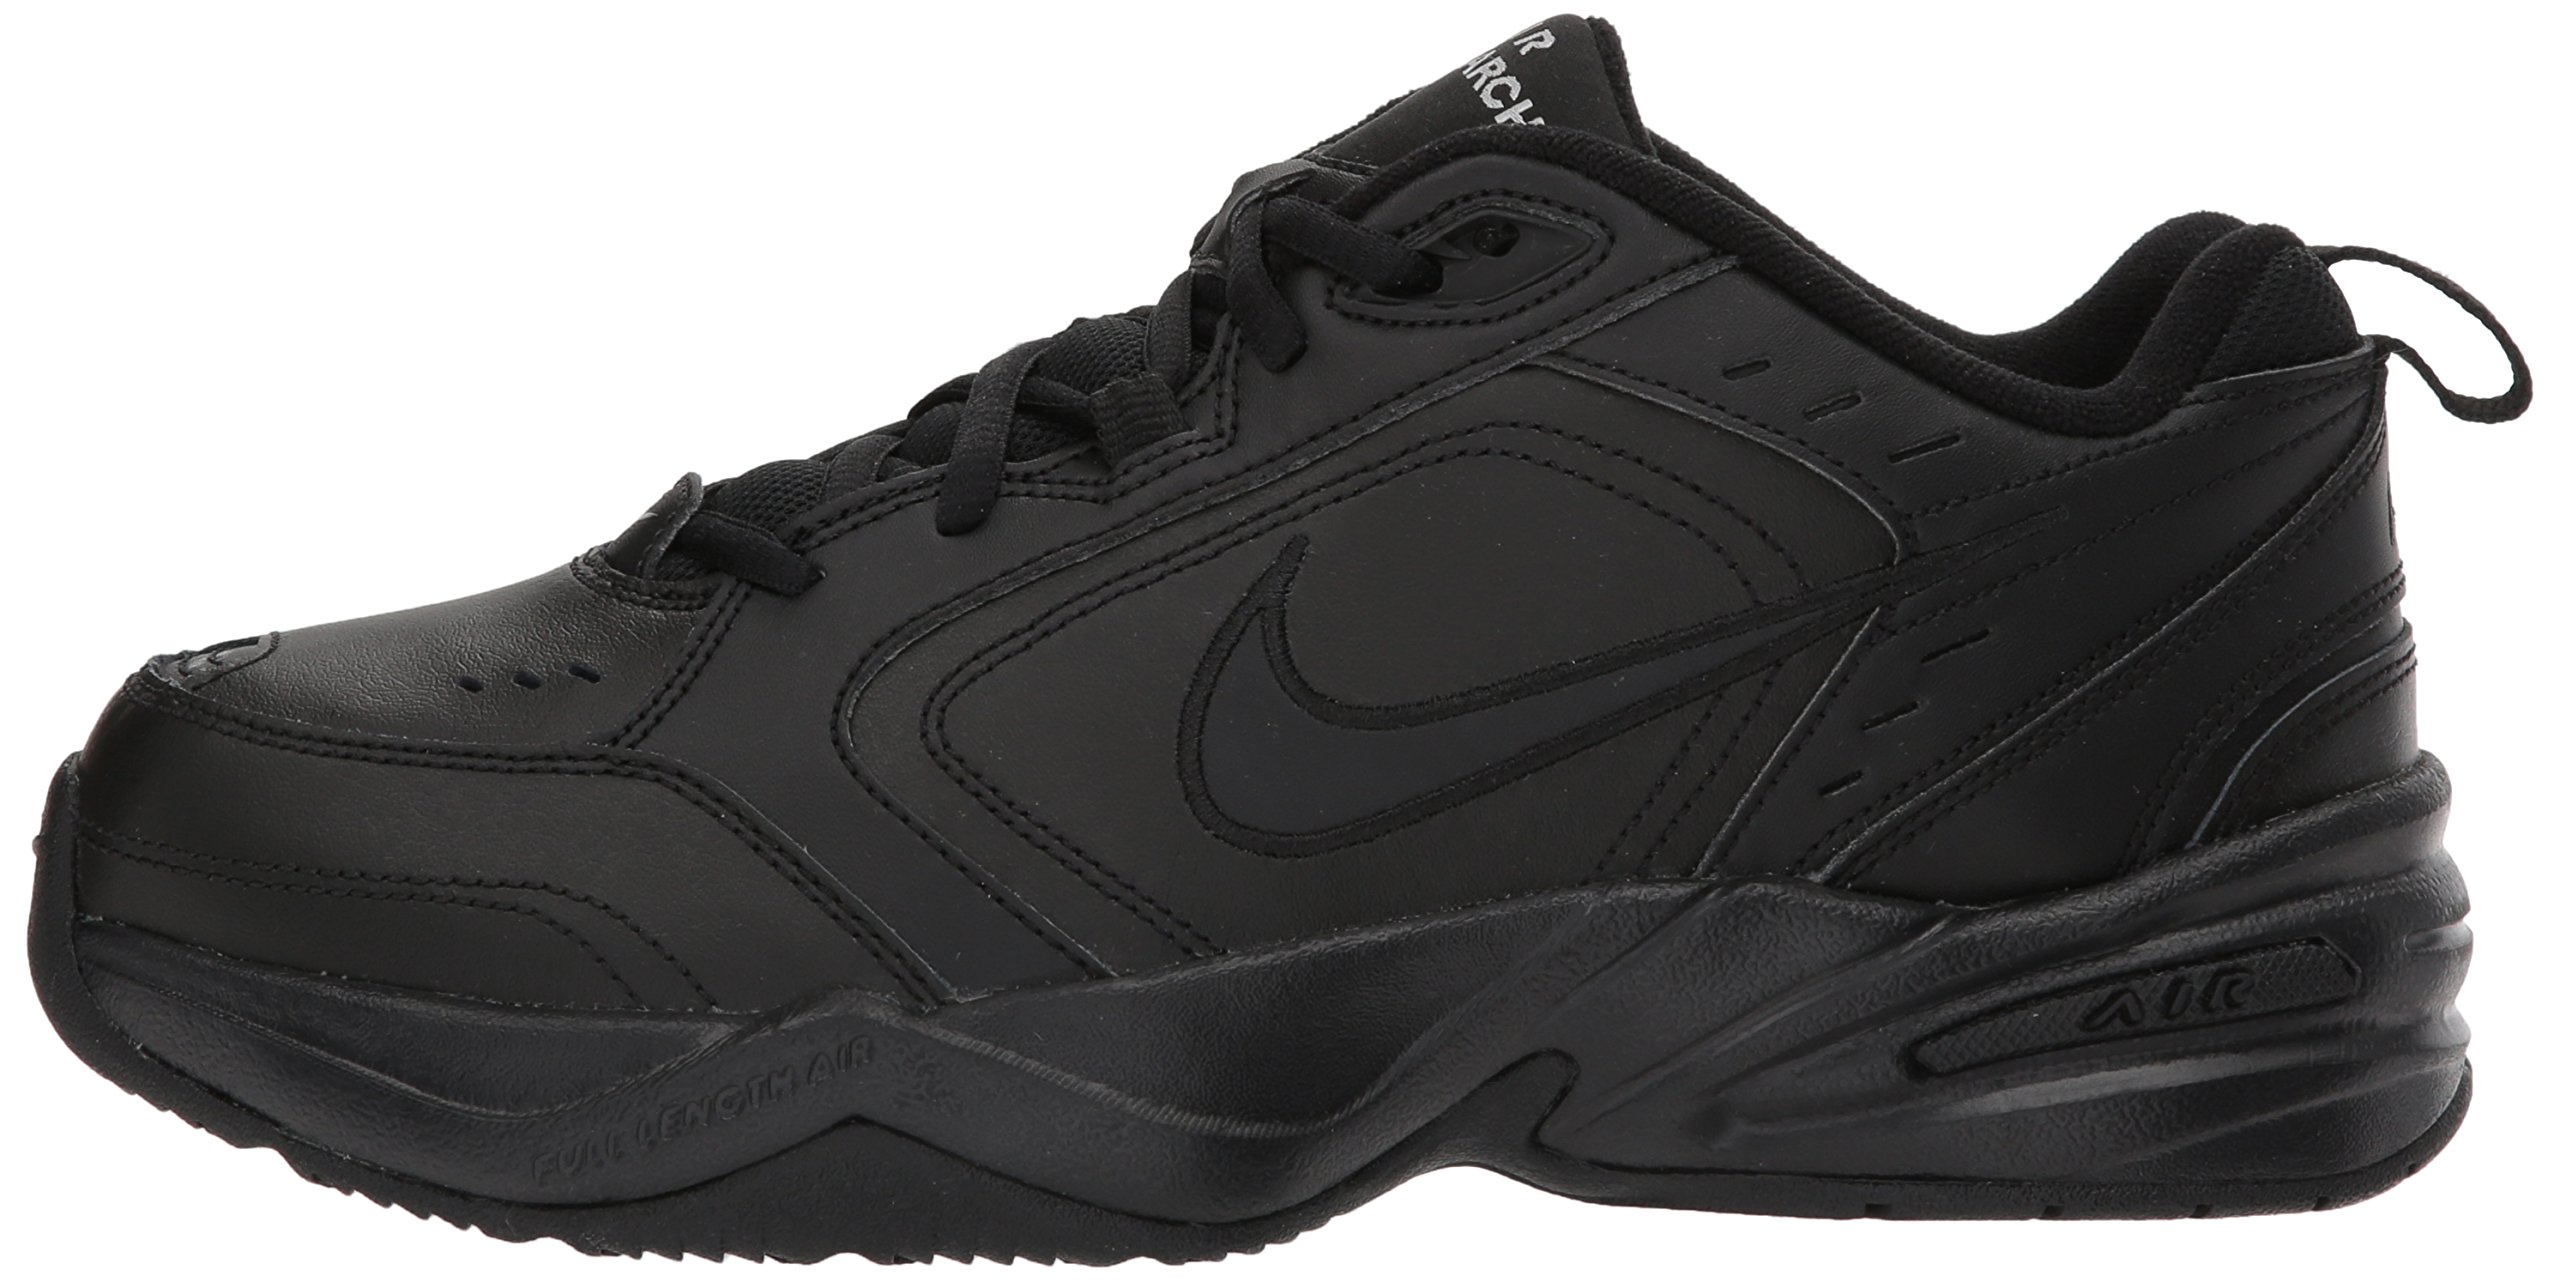 Nike Men's Air Monarch IV Cross Trainer, Black, 7.5 4E US by Nike (Image #5)